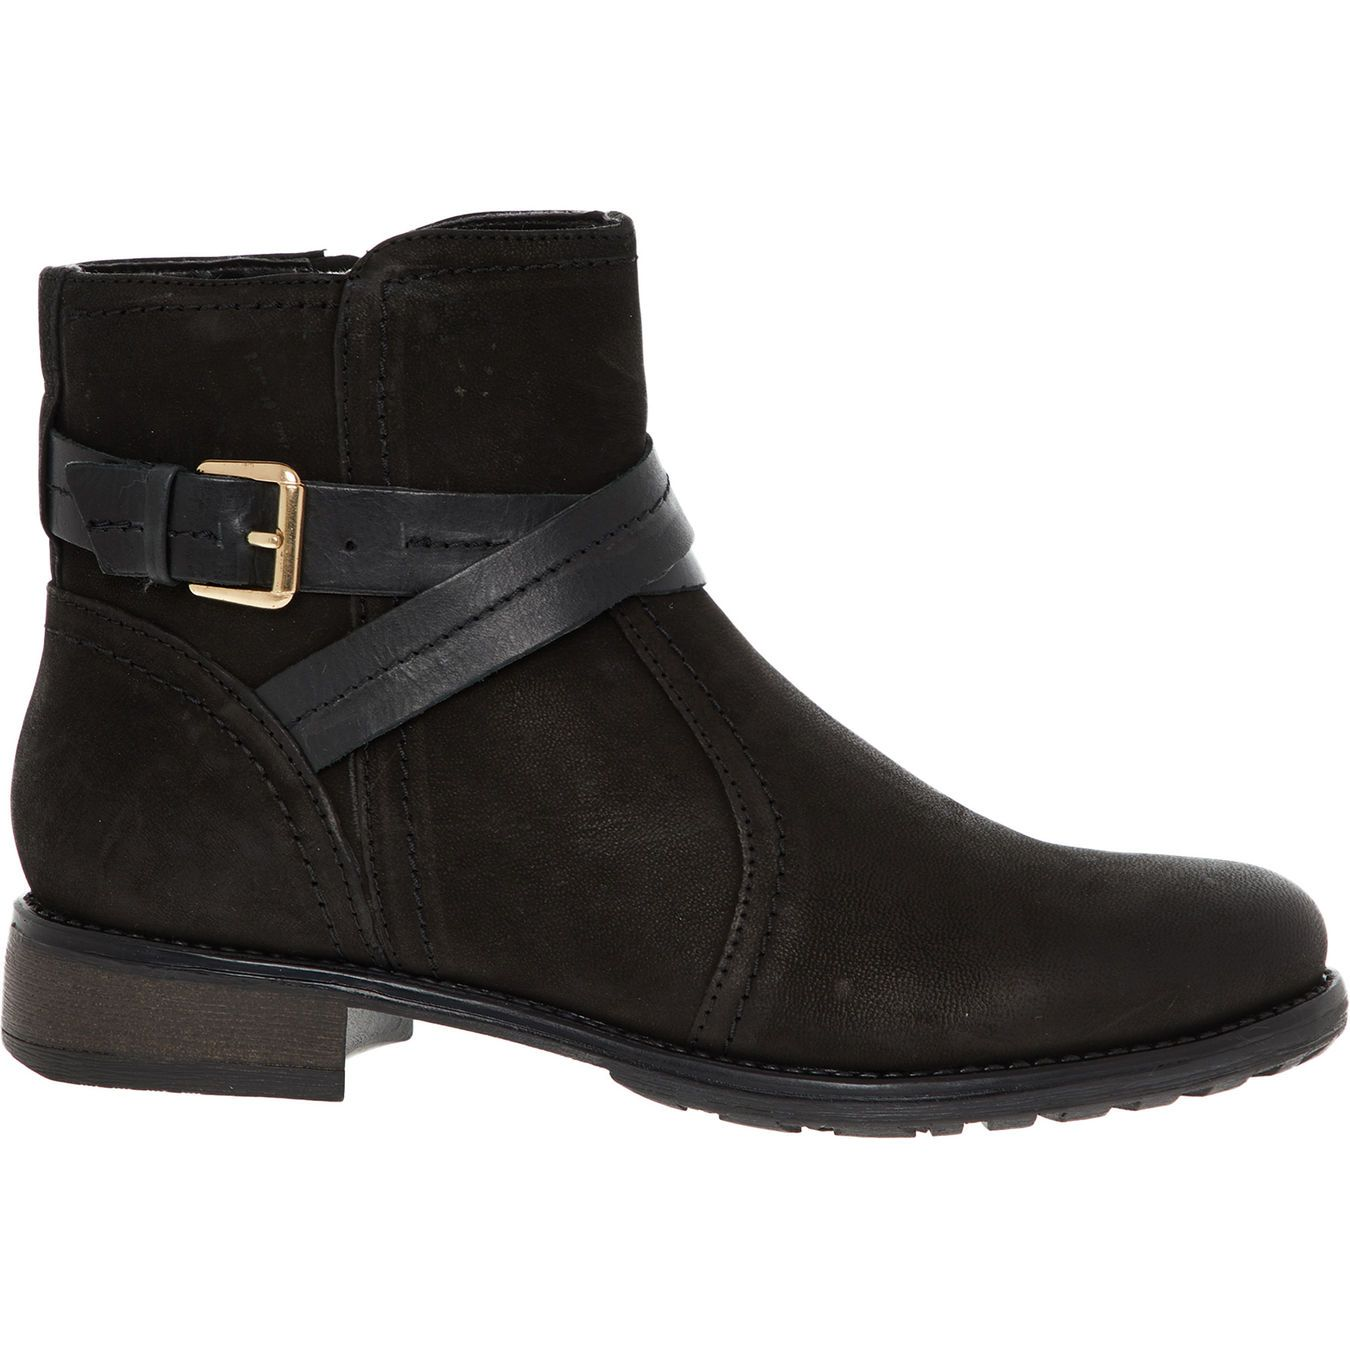 Black Leather Boots Ankle Boots Boots Shoes Women